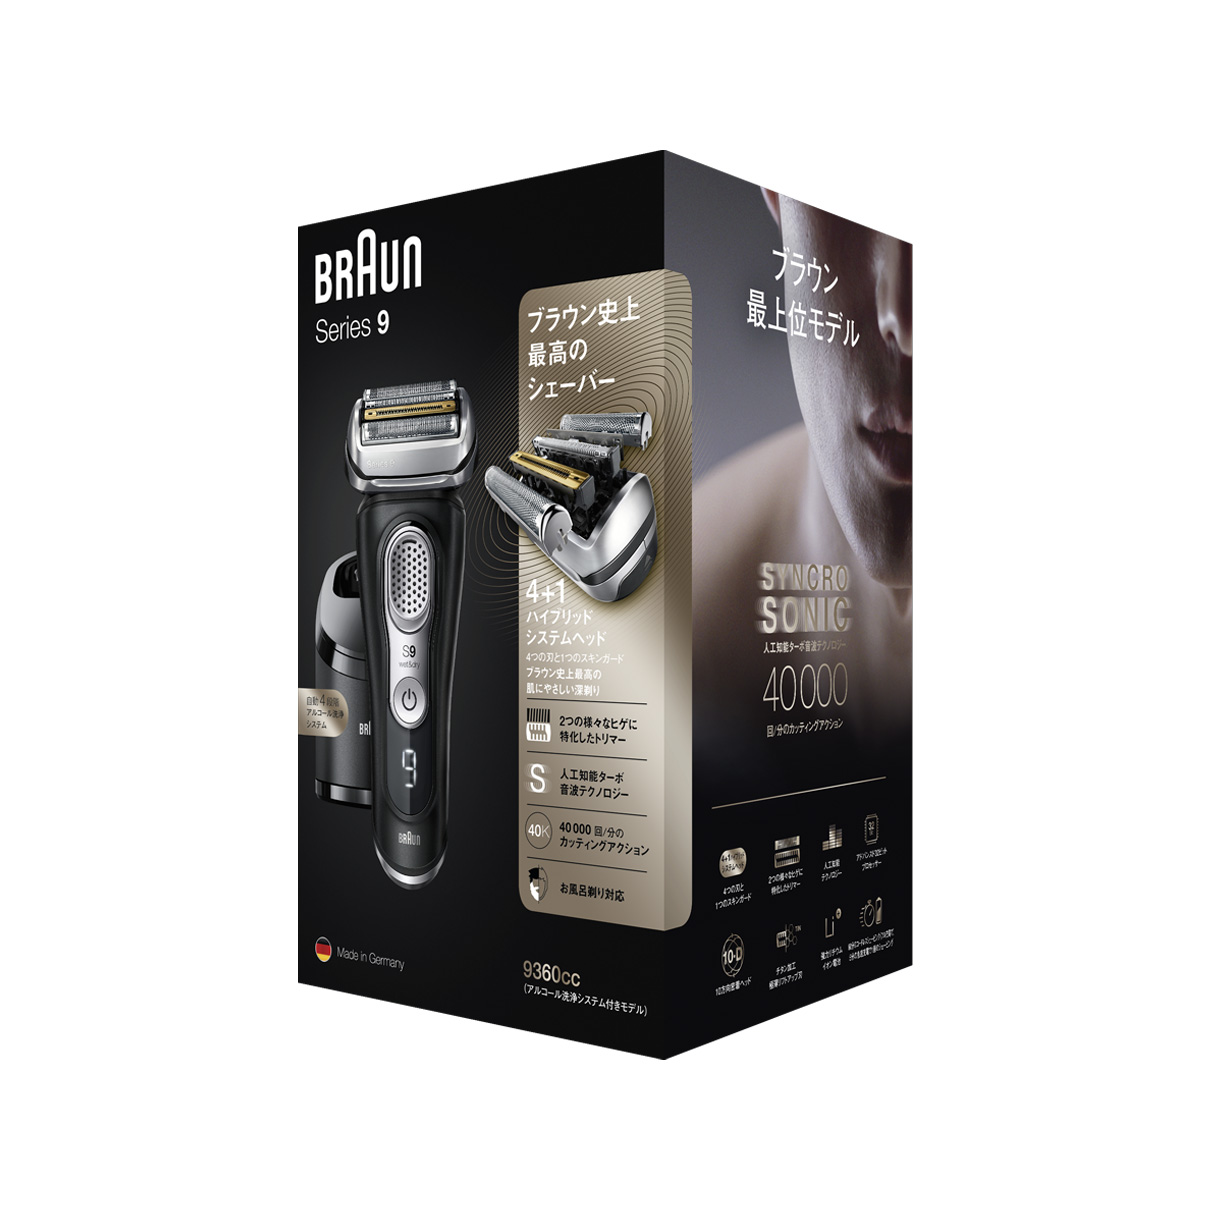 Series 9 9360cc shaver - Packaging